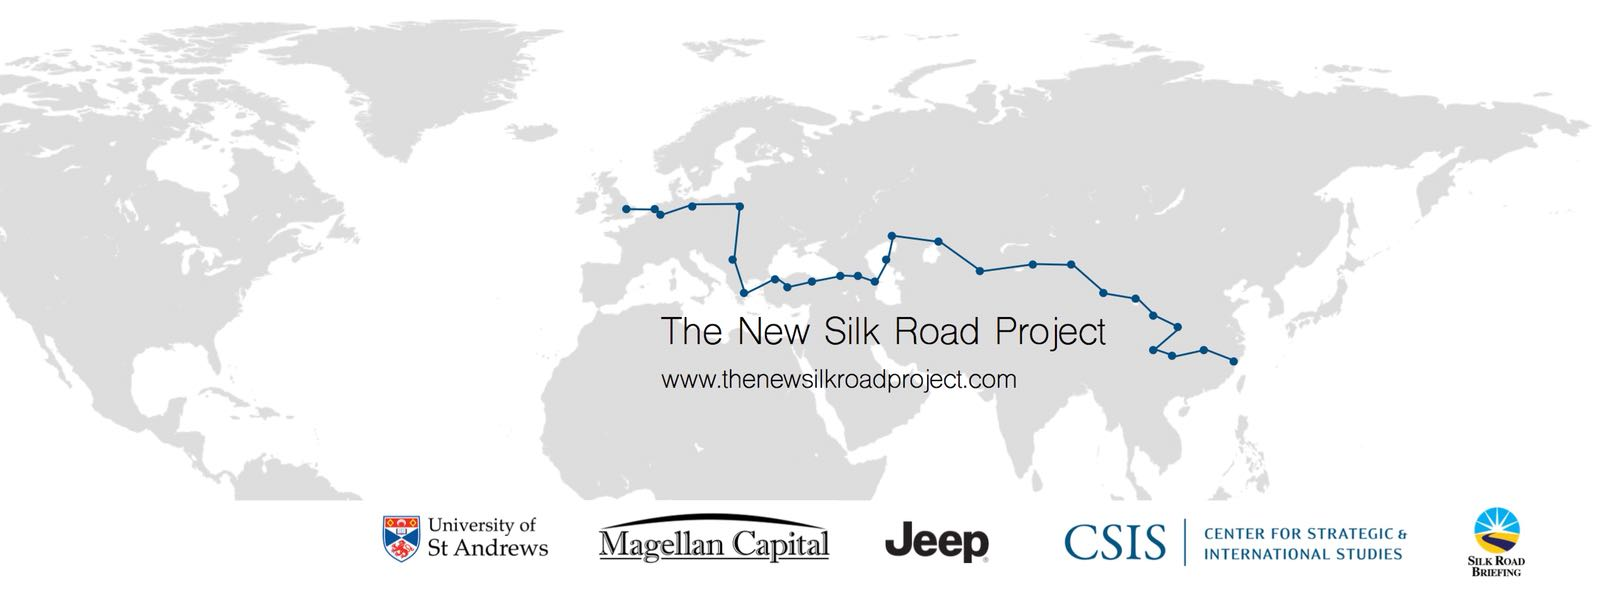 The New Silk Road Project Completes Ferry Crossing, Rotterdam Port Visit post image